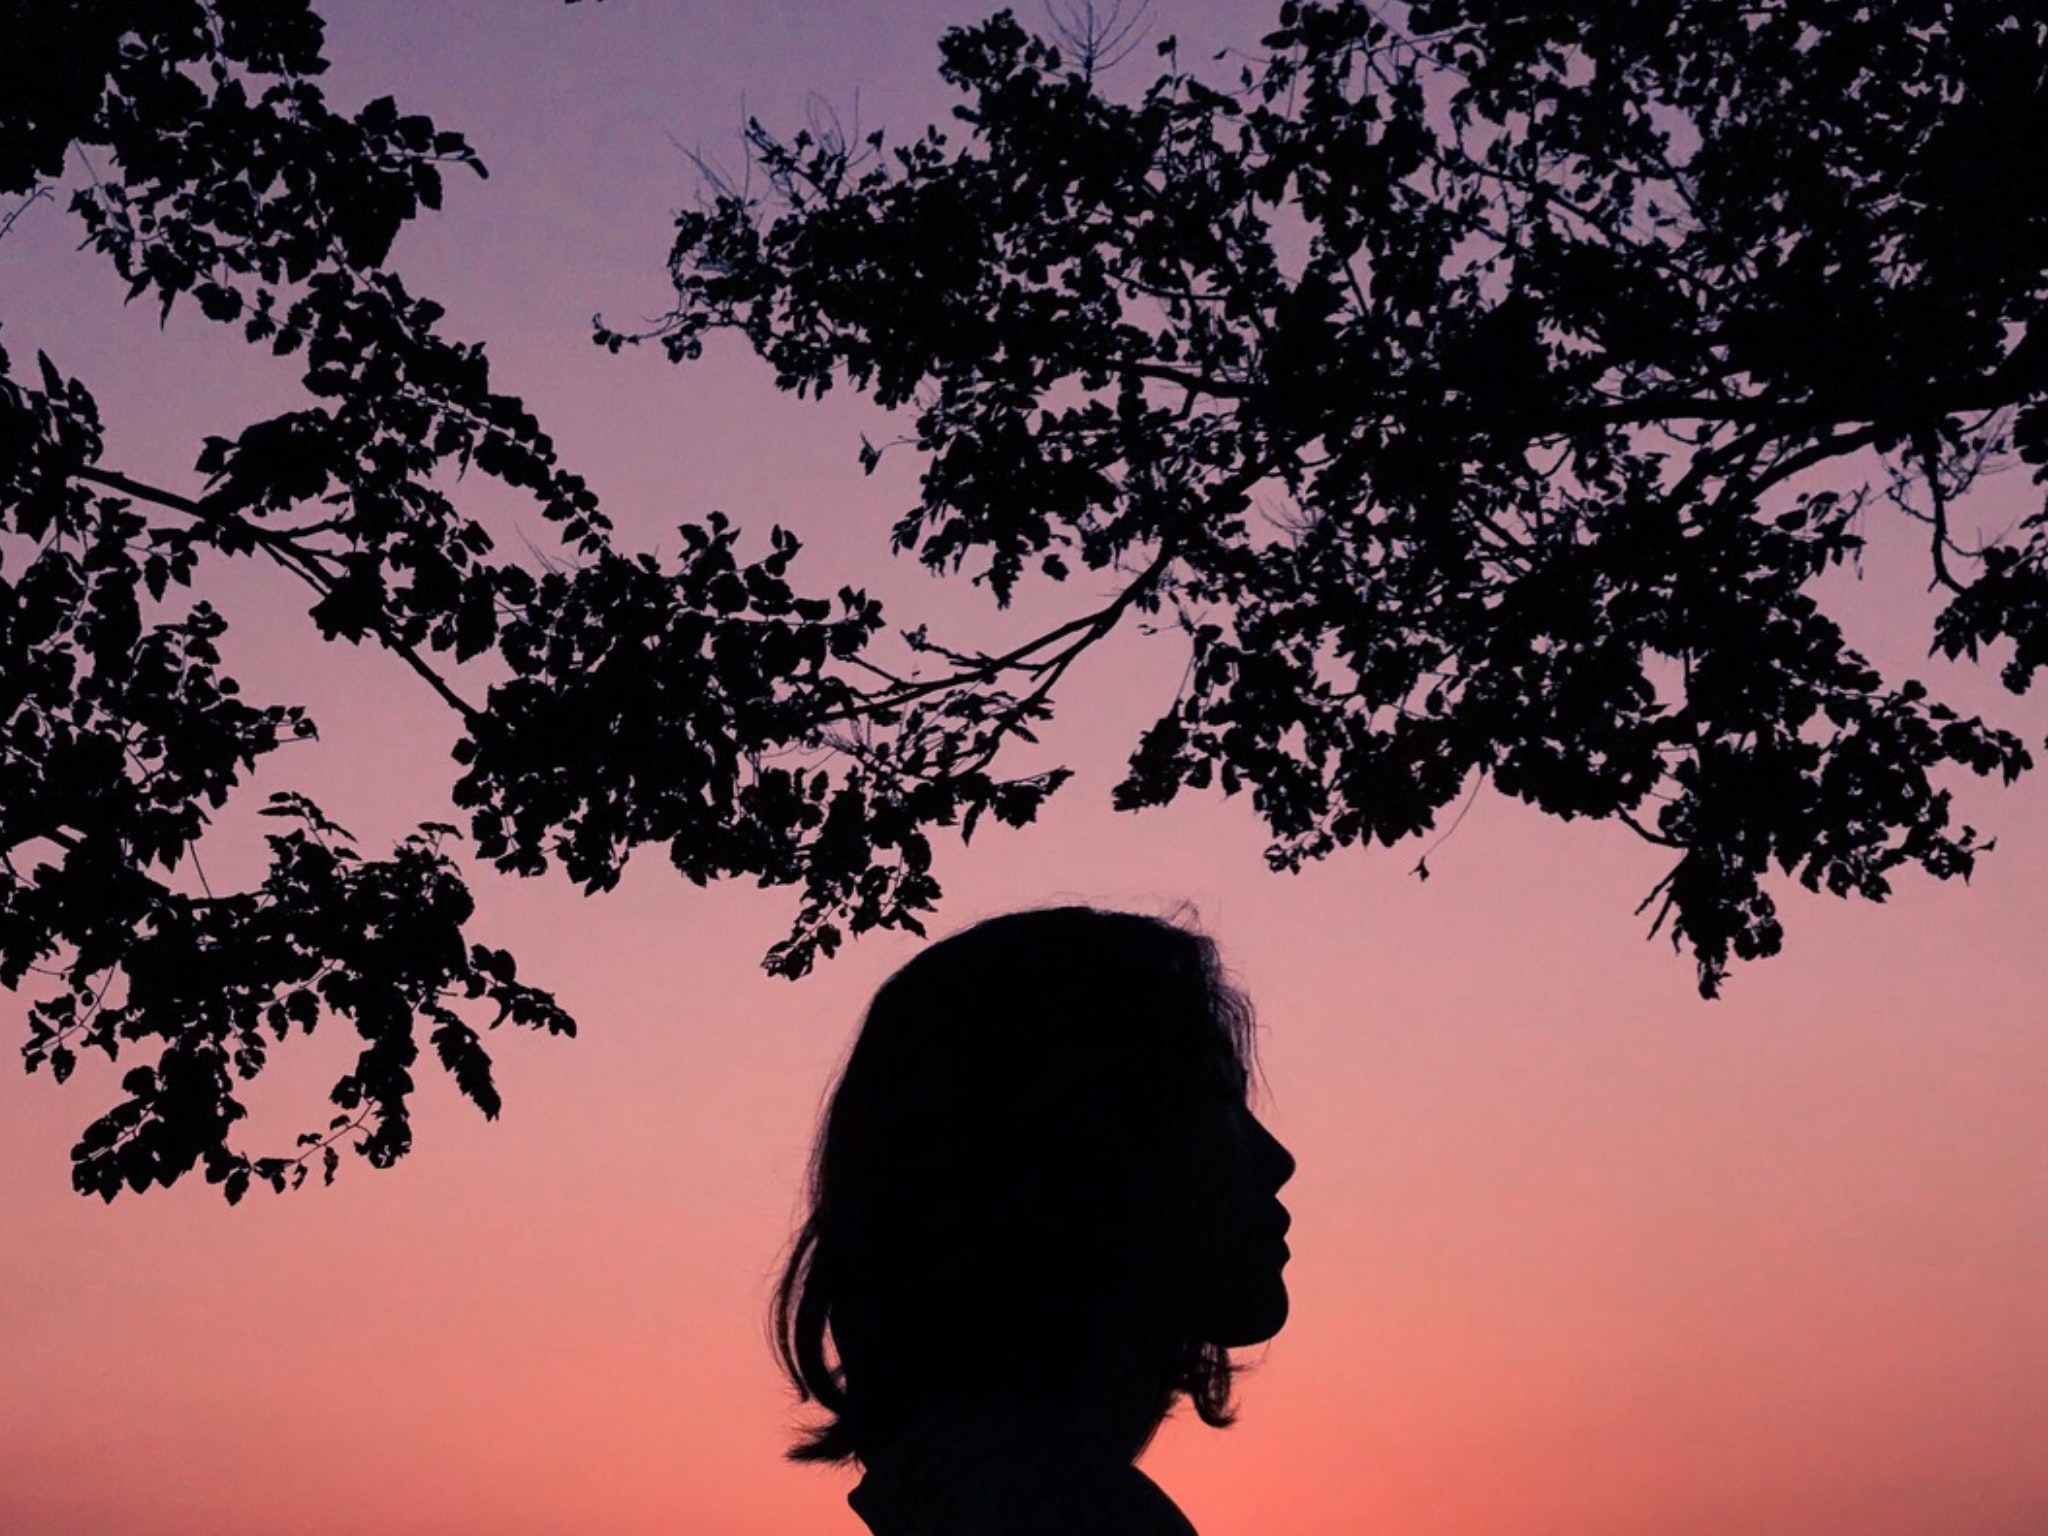 silhouette of person under tree